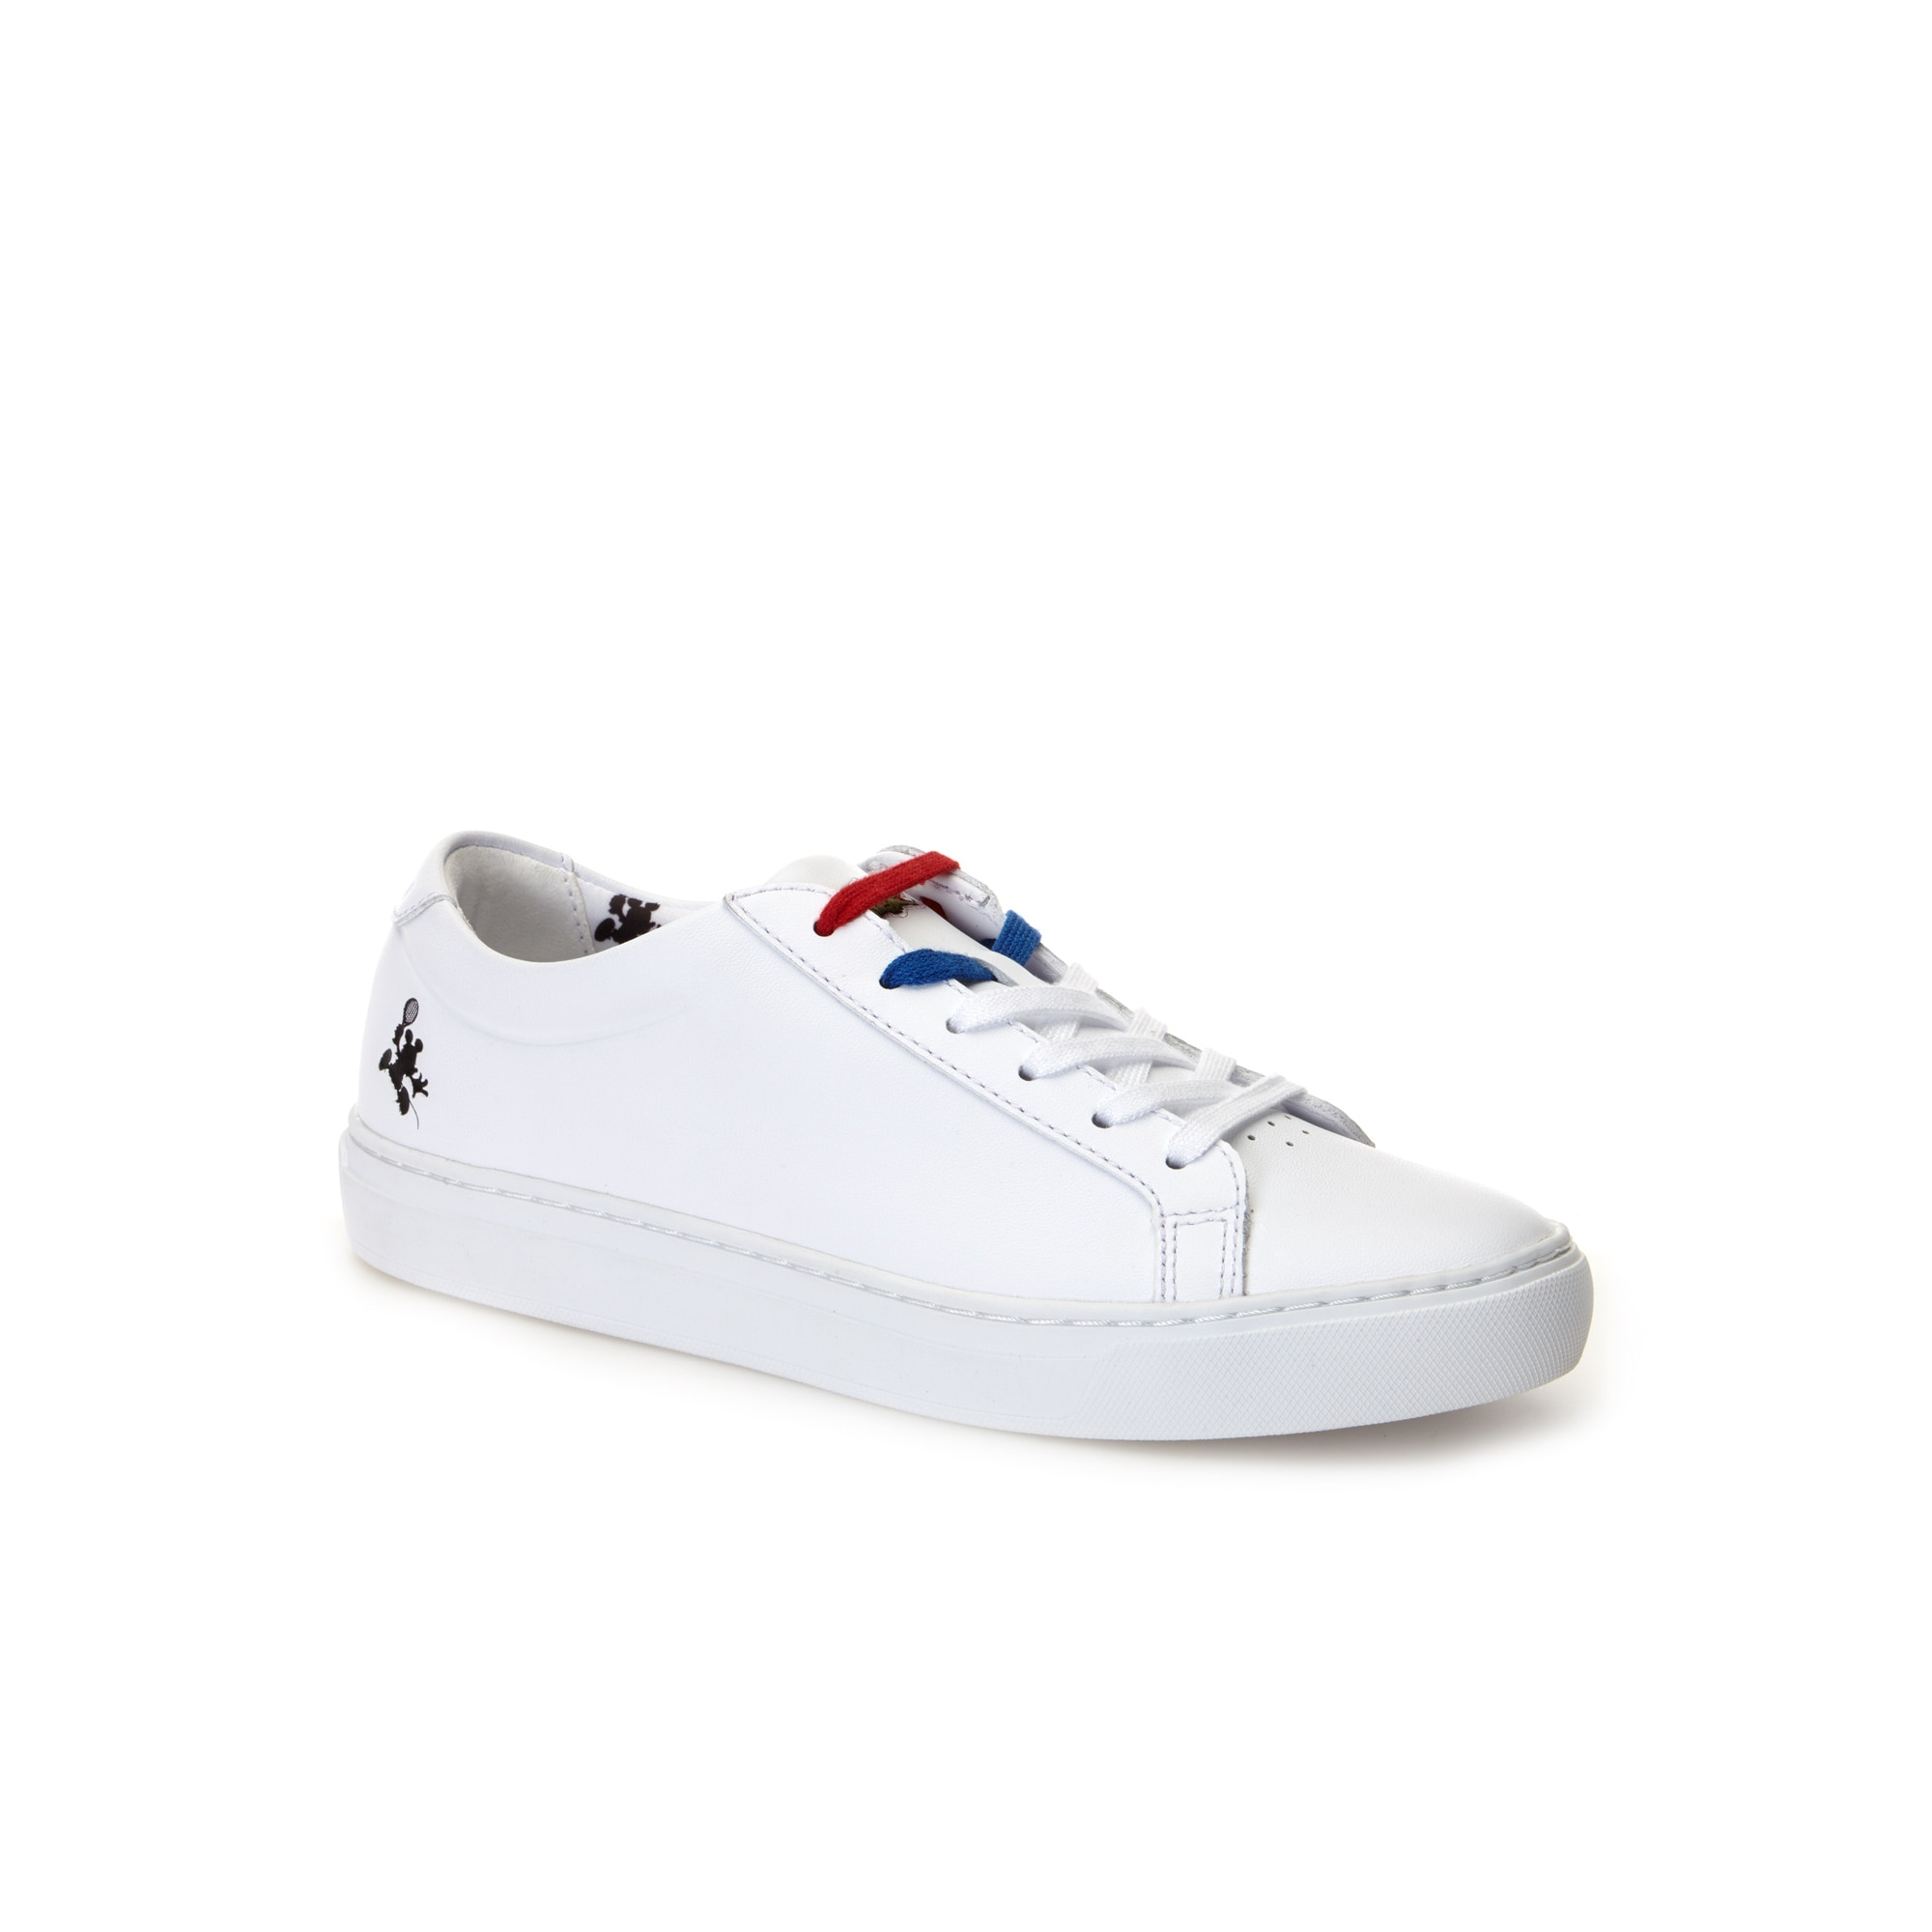 03168561784 Women s L.12.12 Lacoste Disney Sneakers